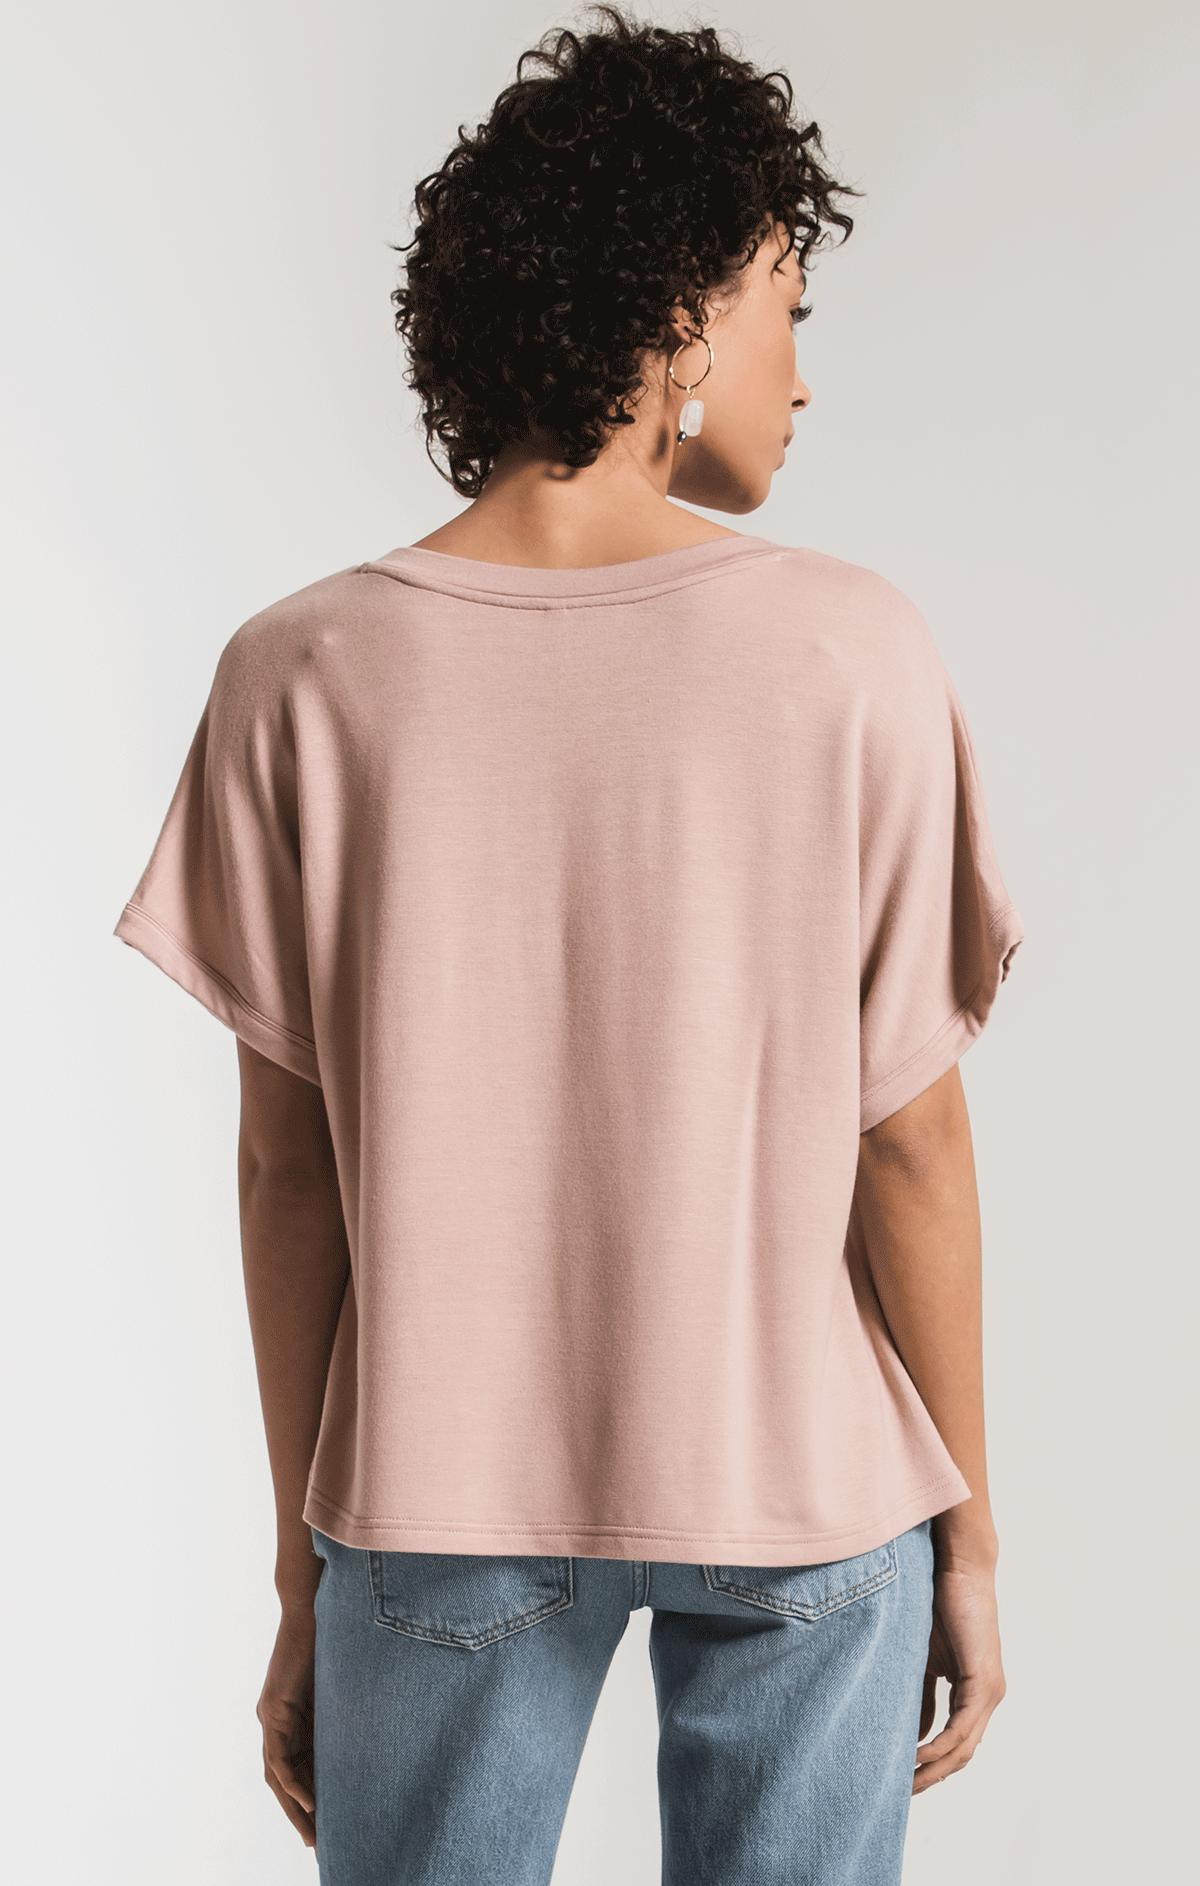 Tops The Alda Dolman Tee Wood Rose